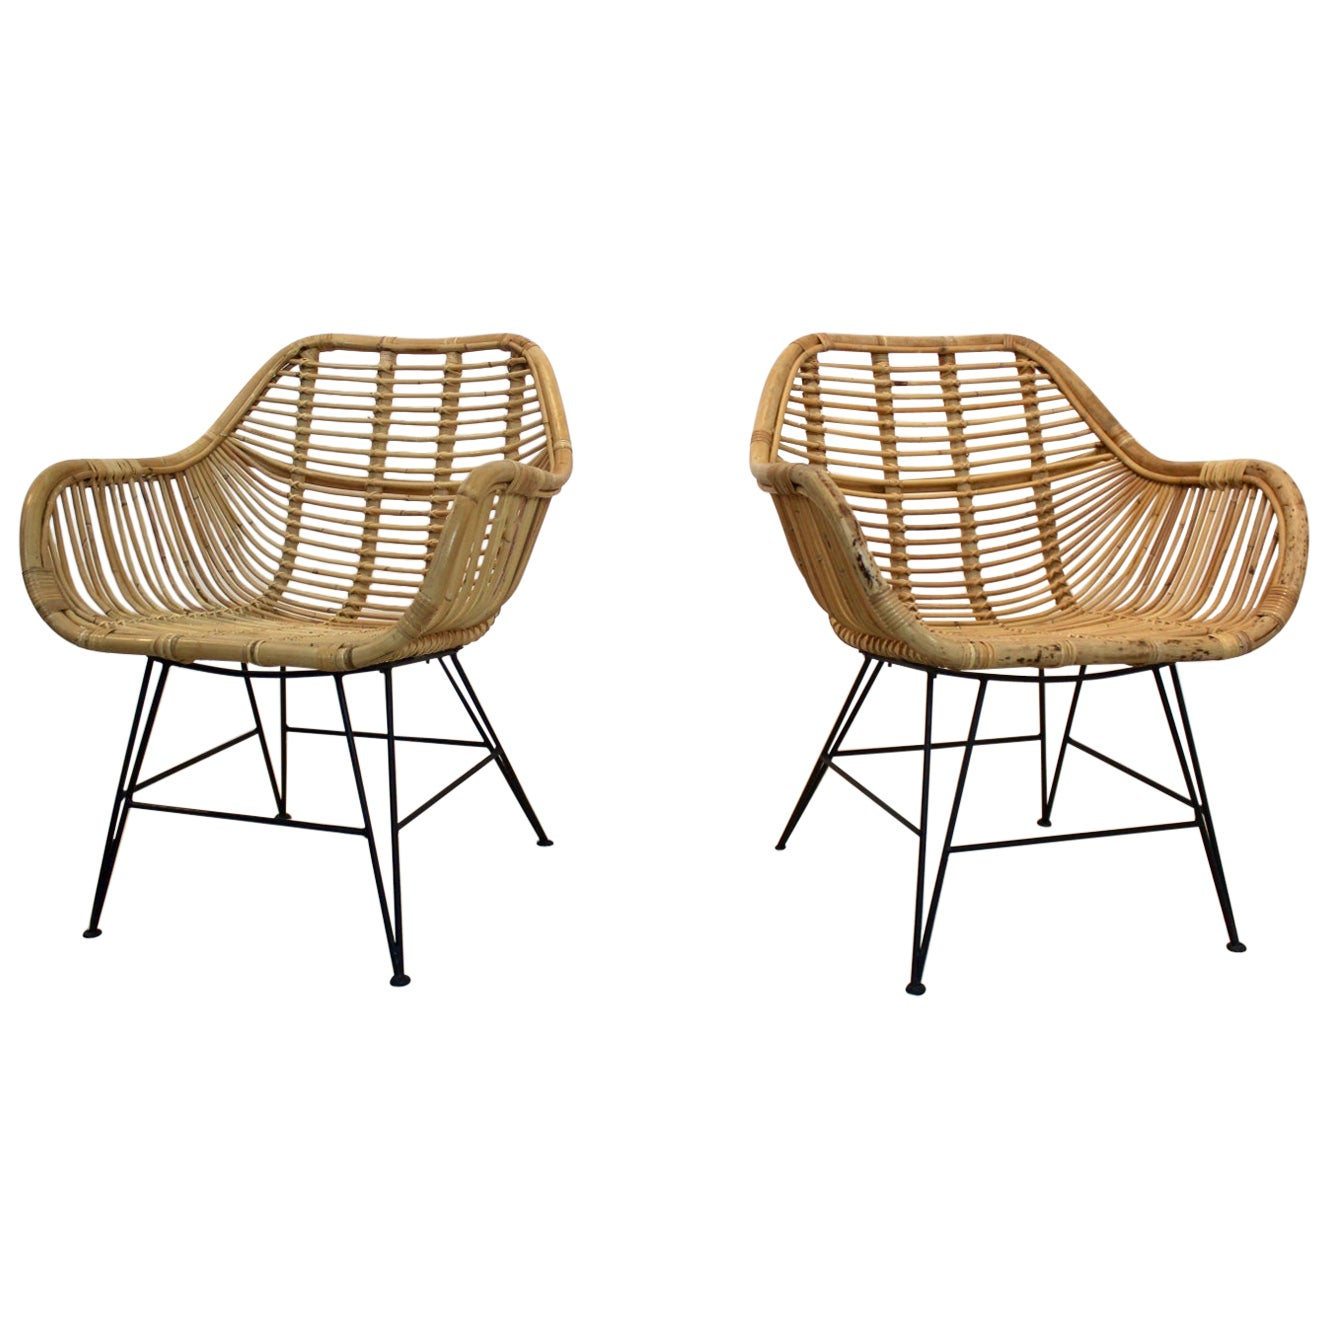 Gorgeous Dutch Wicker and Steel Chairs